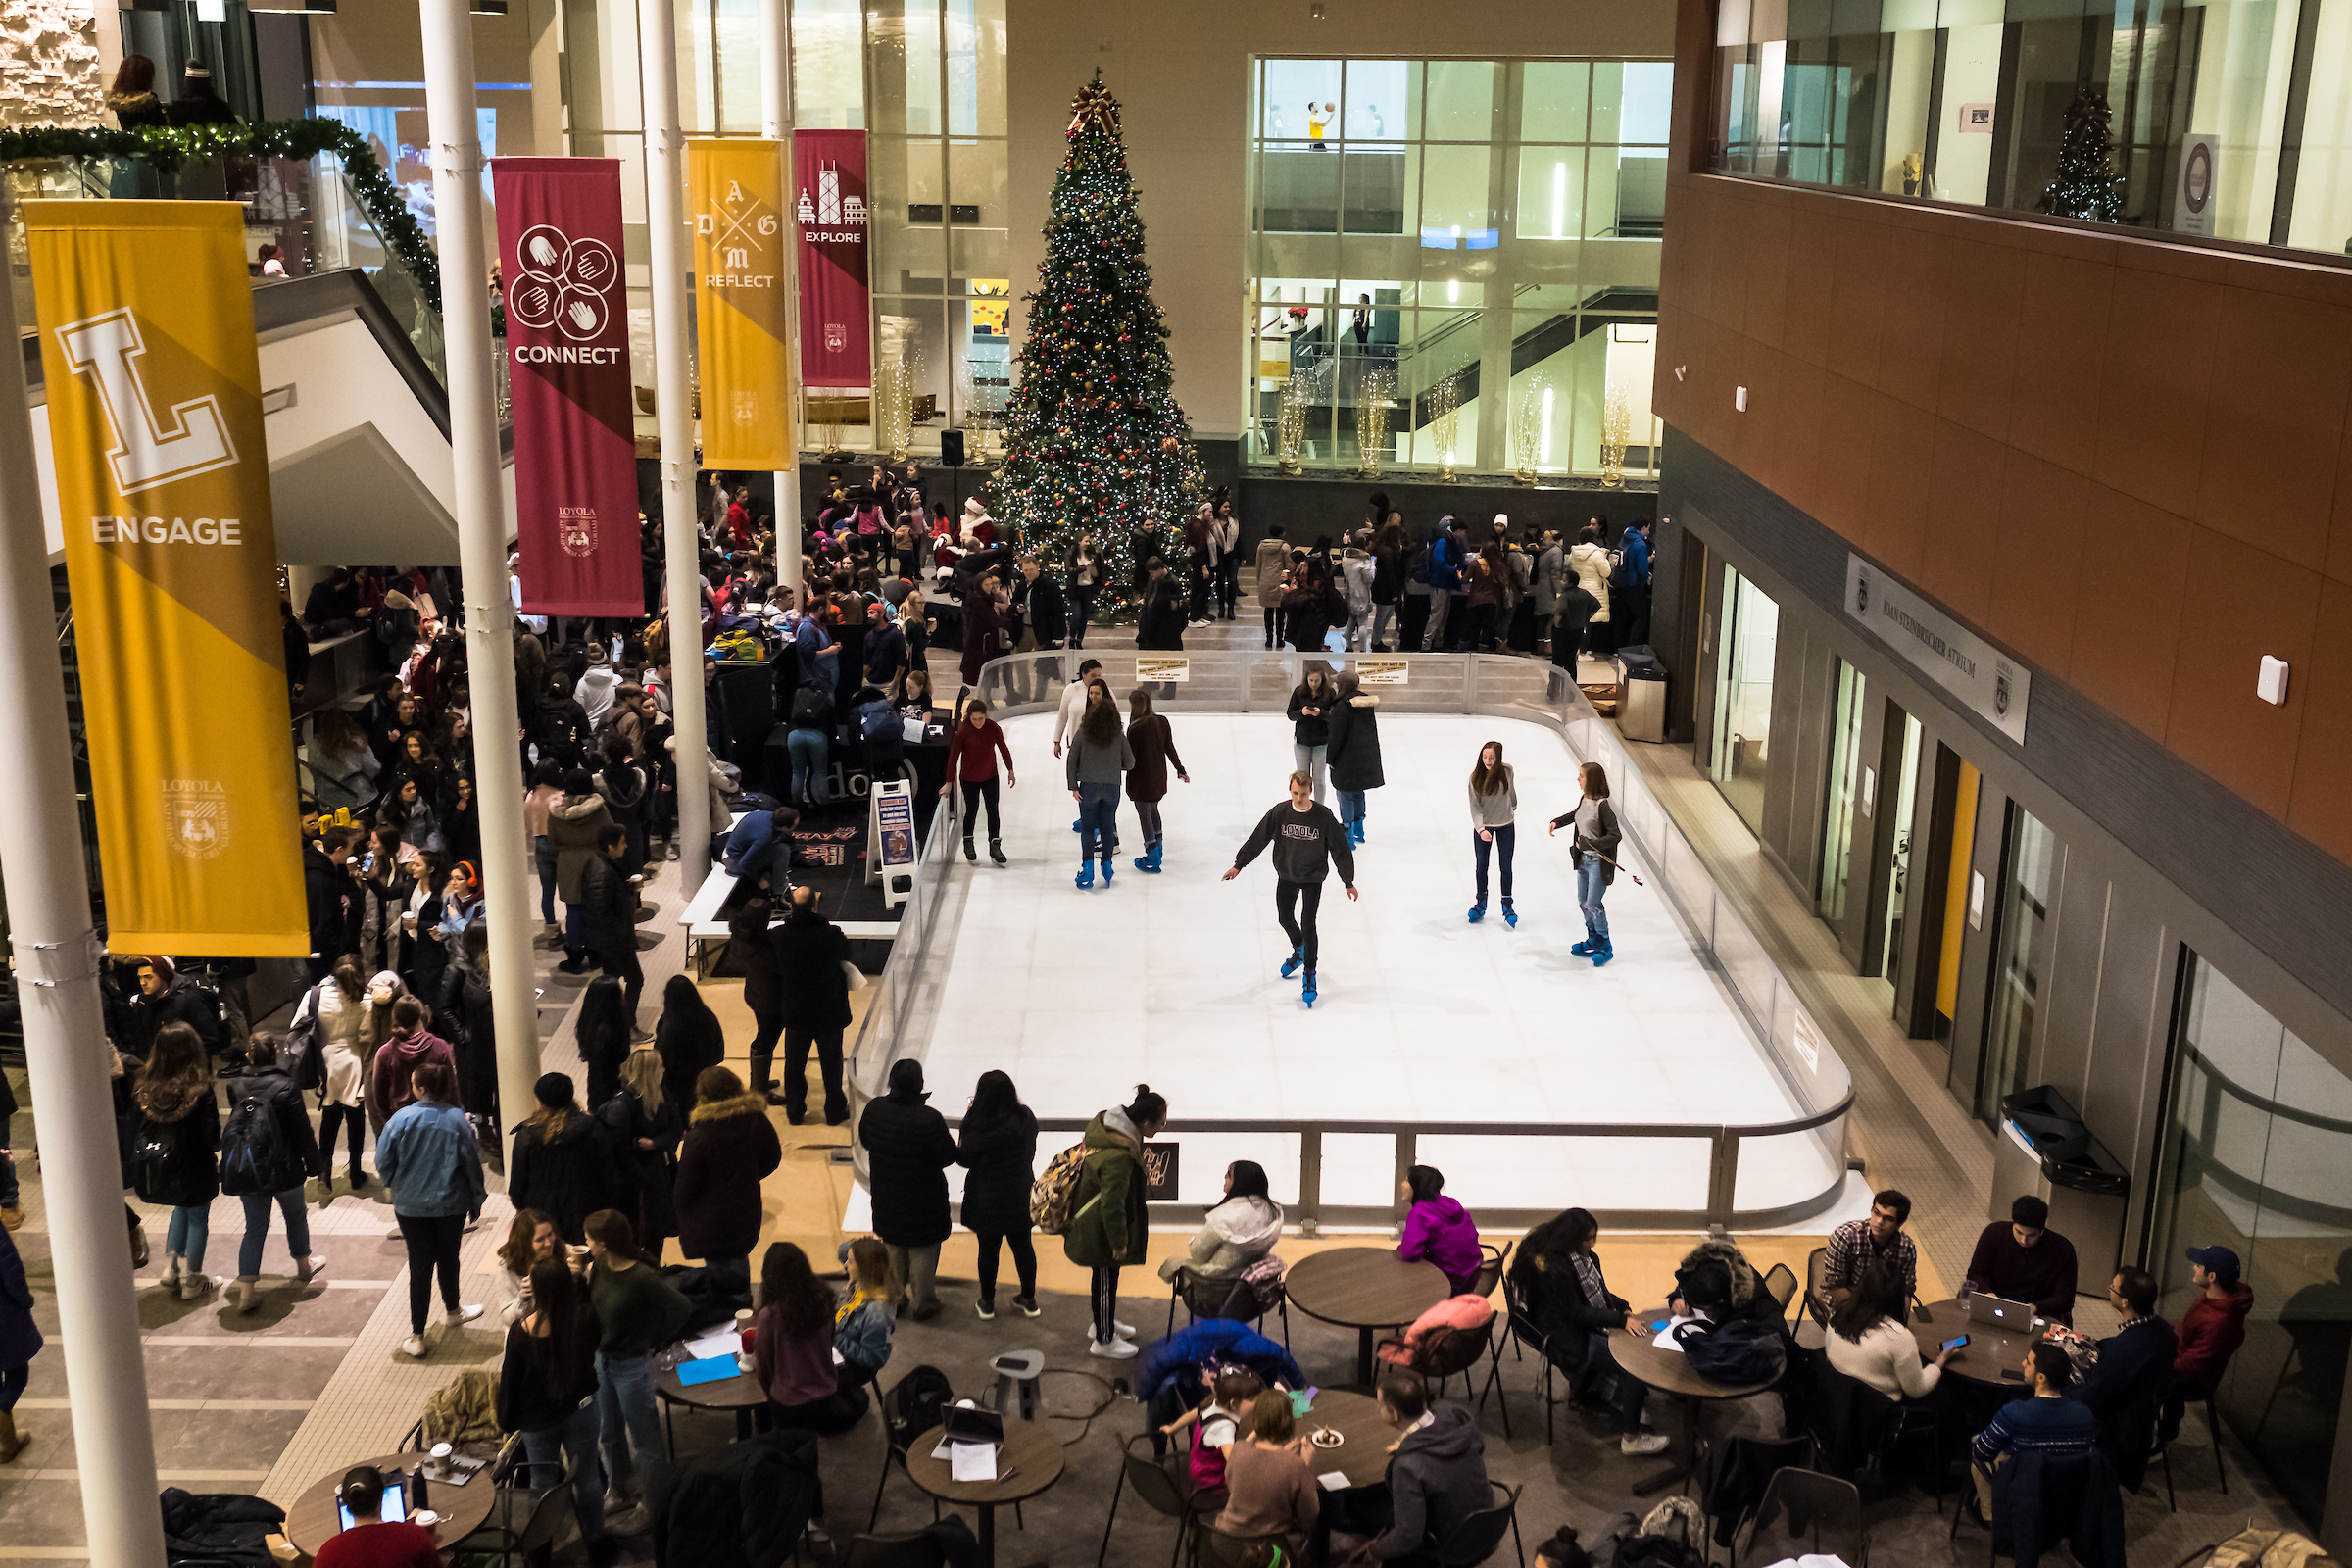 Loyola University Chicago students skate around on an indoor ice skating rink during the annual Christmas Tree Lighting Ceremony in the Damen Student Center on November 29 (Photo by Lukas Keapproth;   click here for more photos of Loyola at Christmas  )